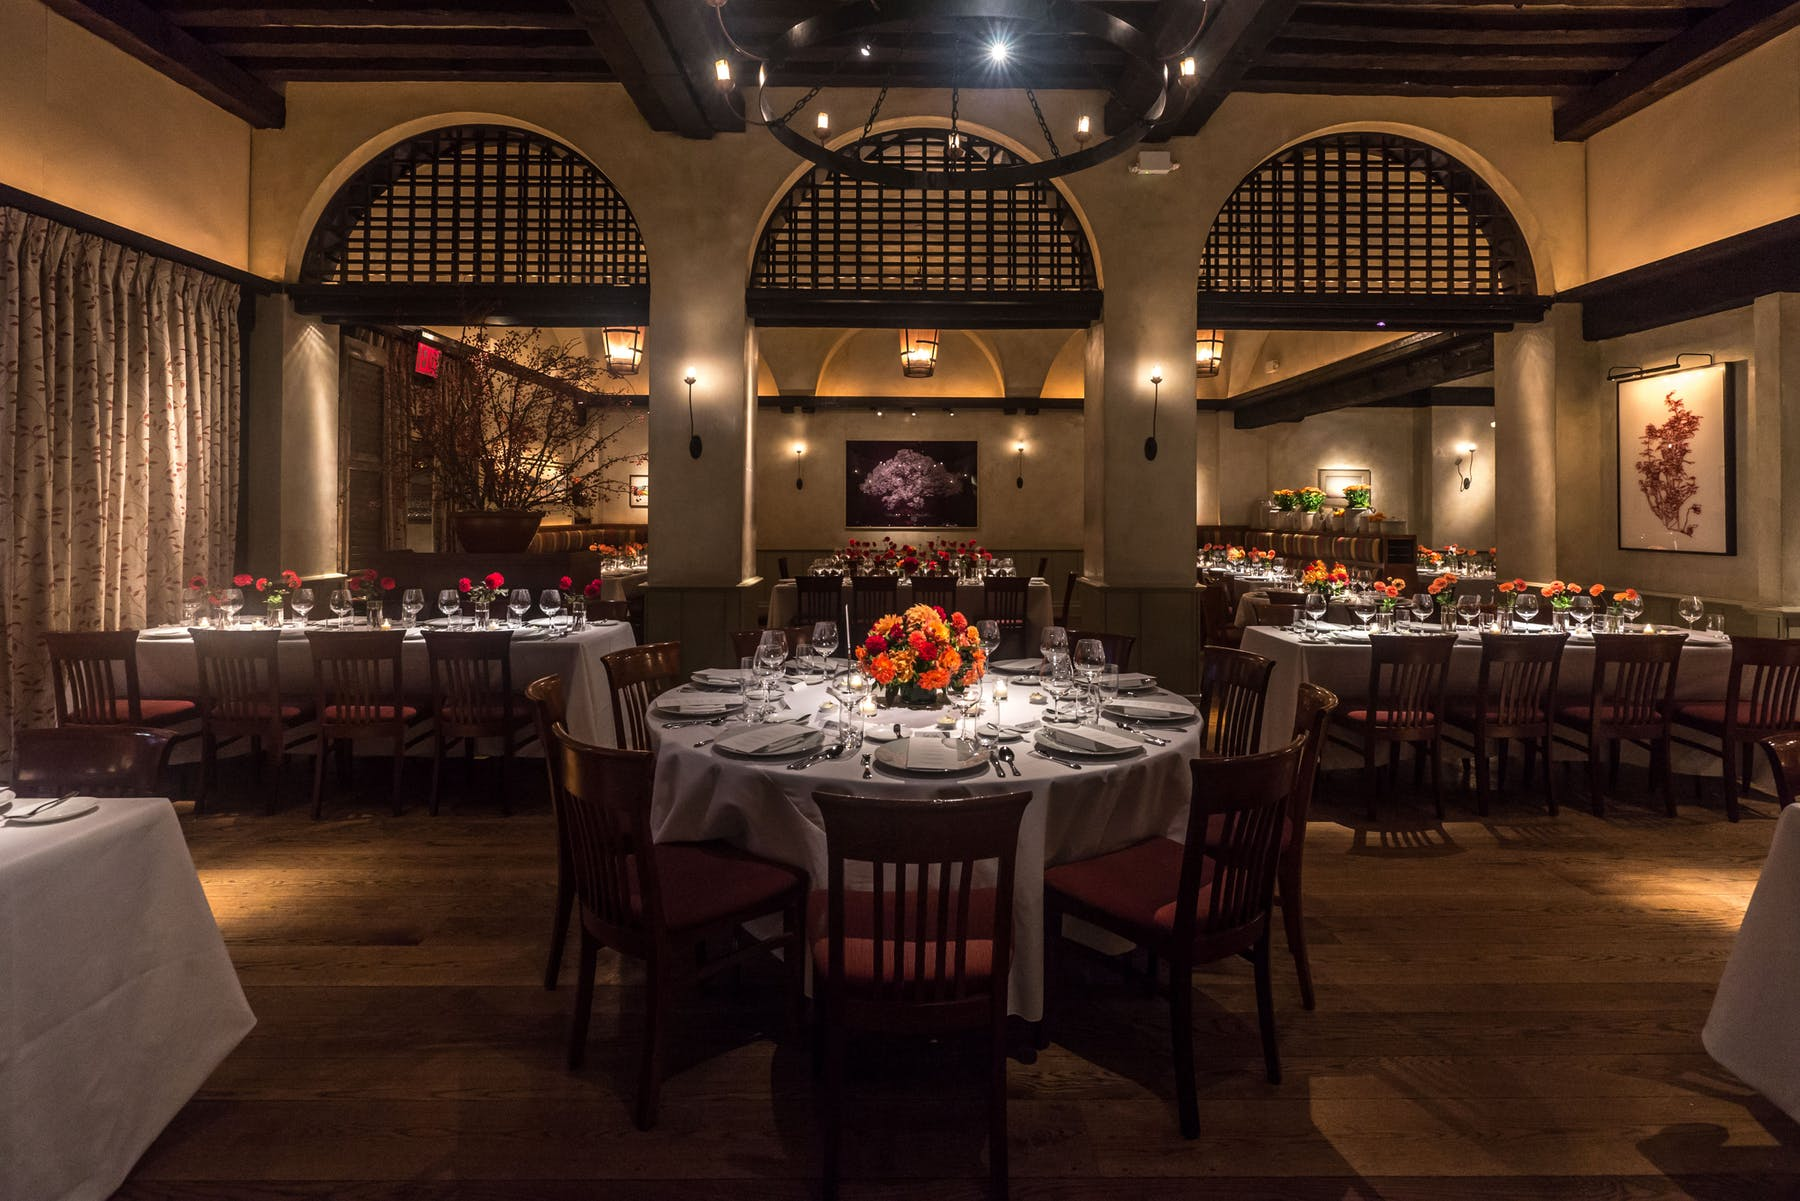 Buyout event space at Gramercy Tavern in New York City, NYC, NY/NJ Area